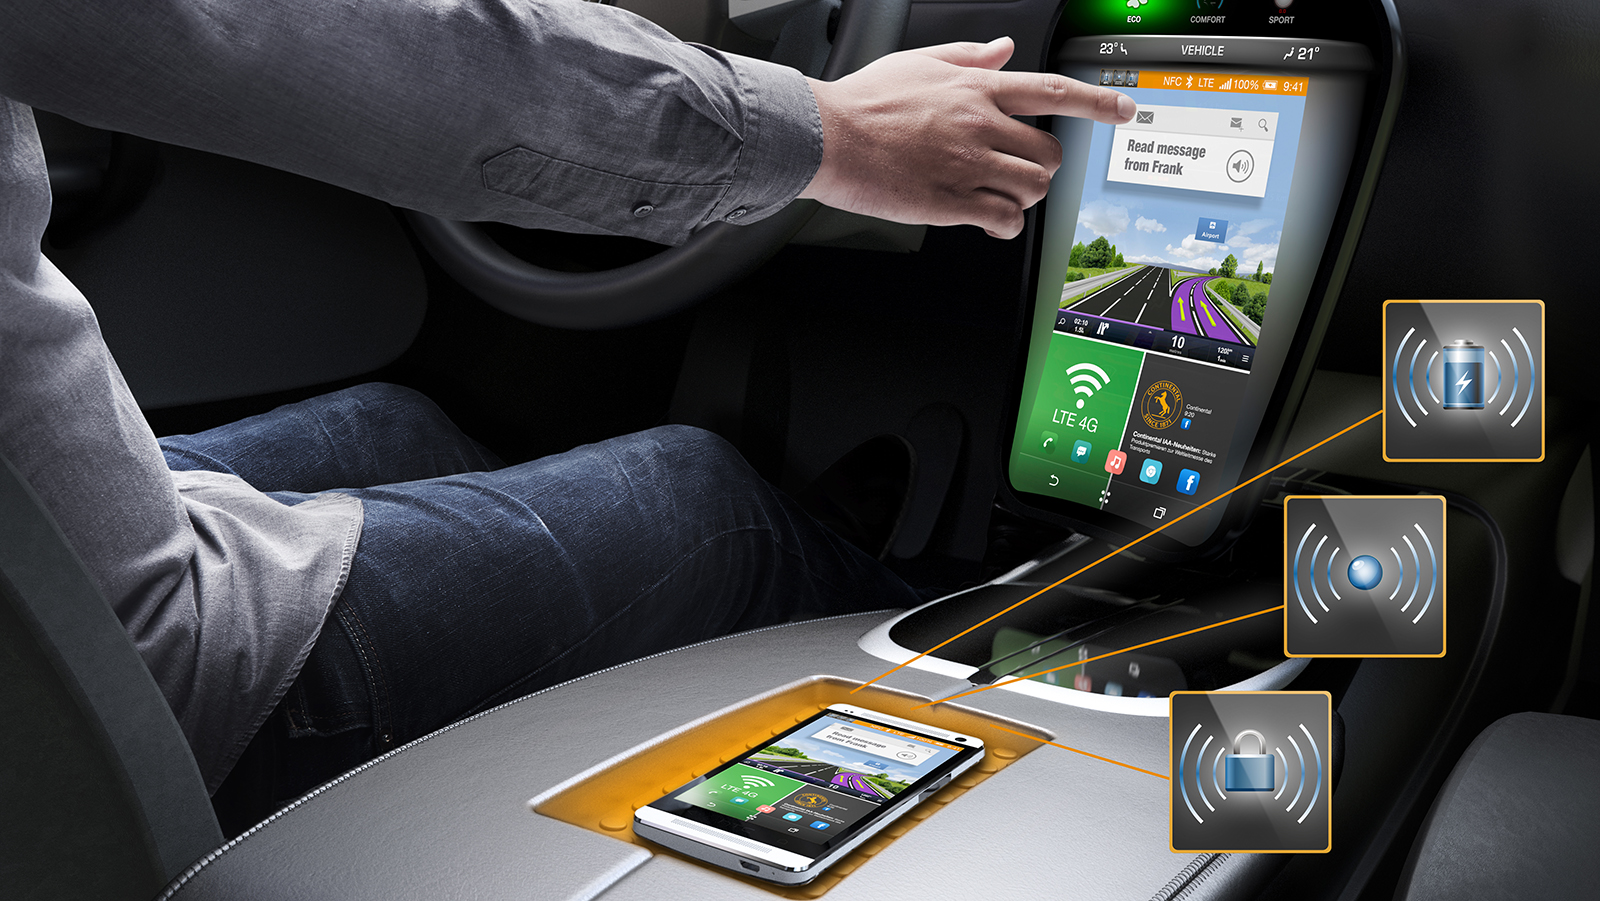 Used in ever-more electronic entertainment devices, multi-gesture recognition will enhance modern display and control systems in more and more vehicles.